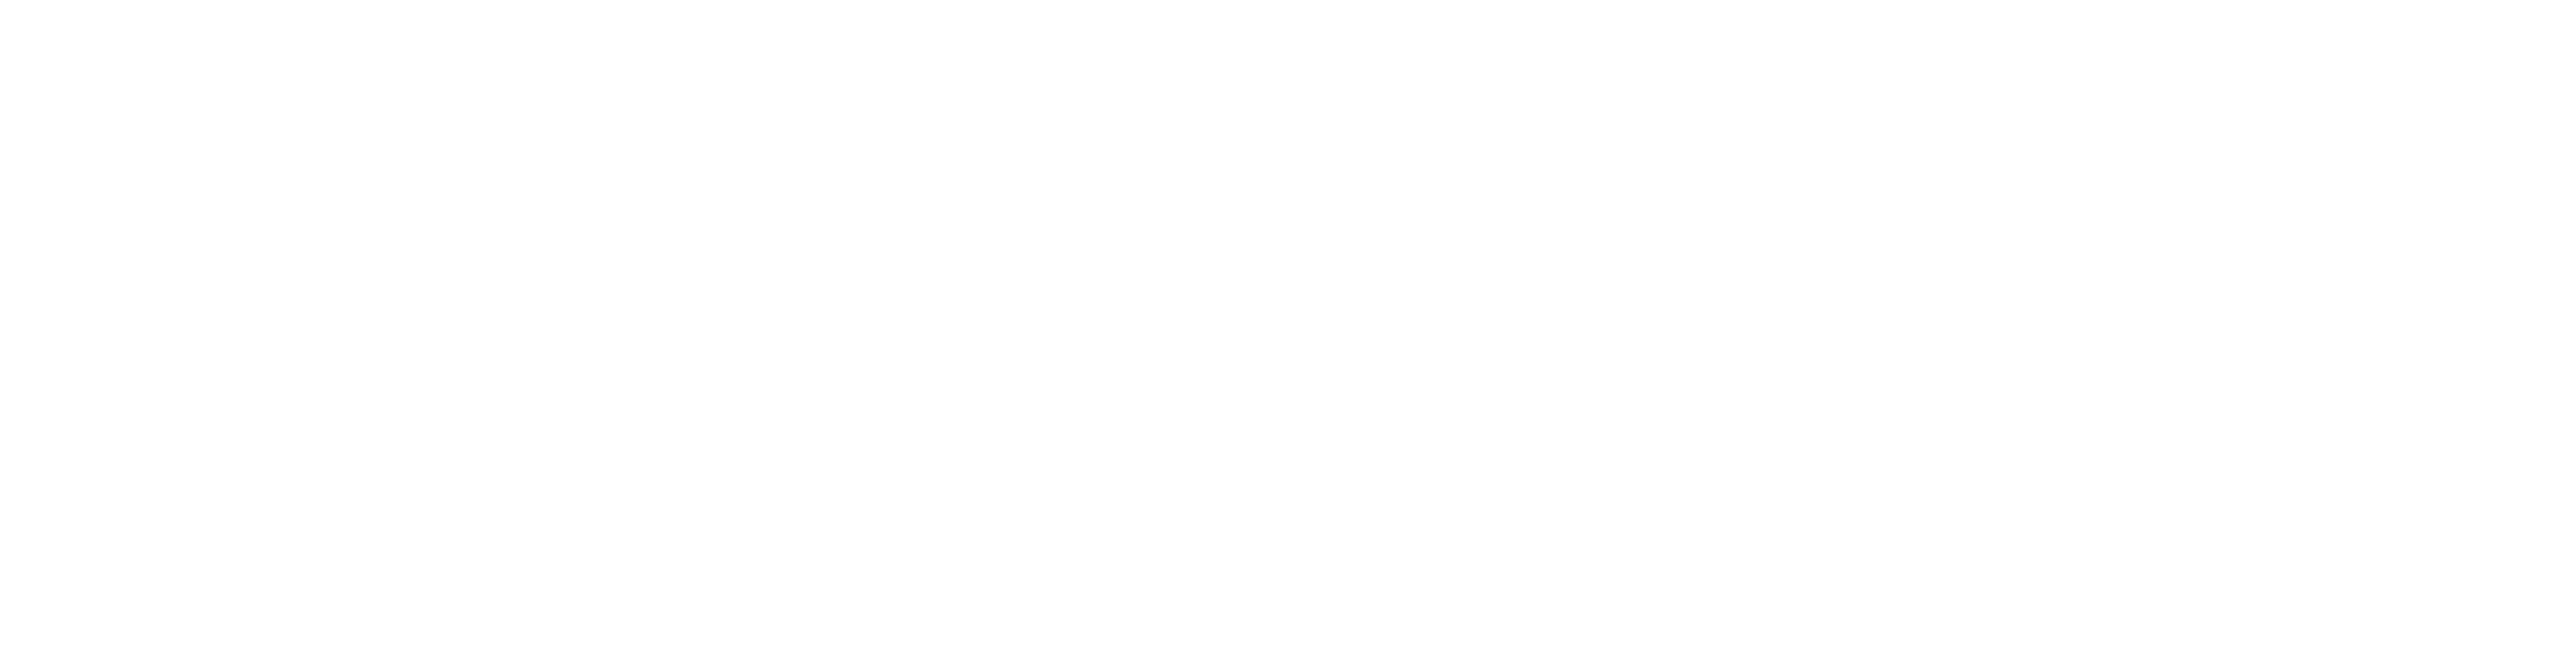 Transparent Logo